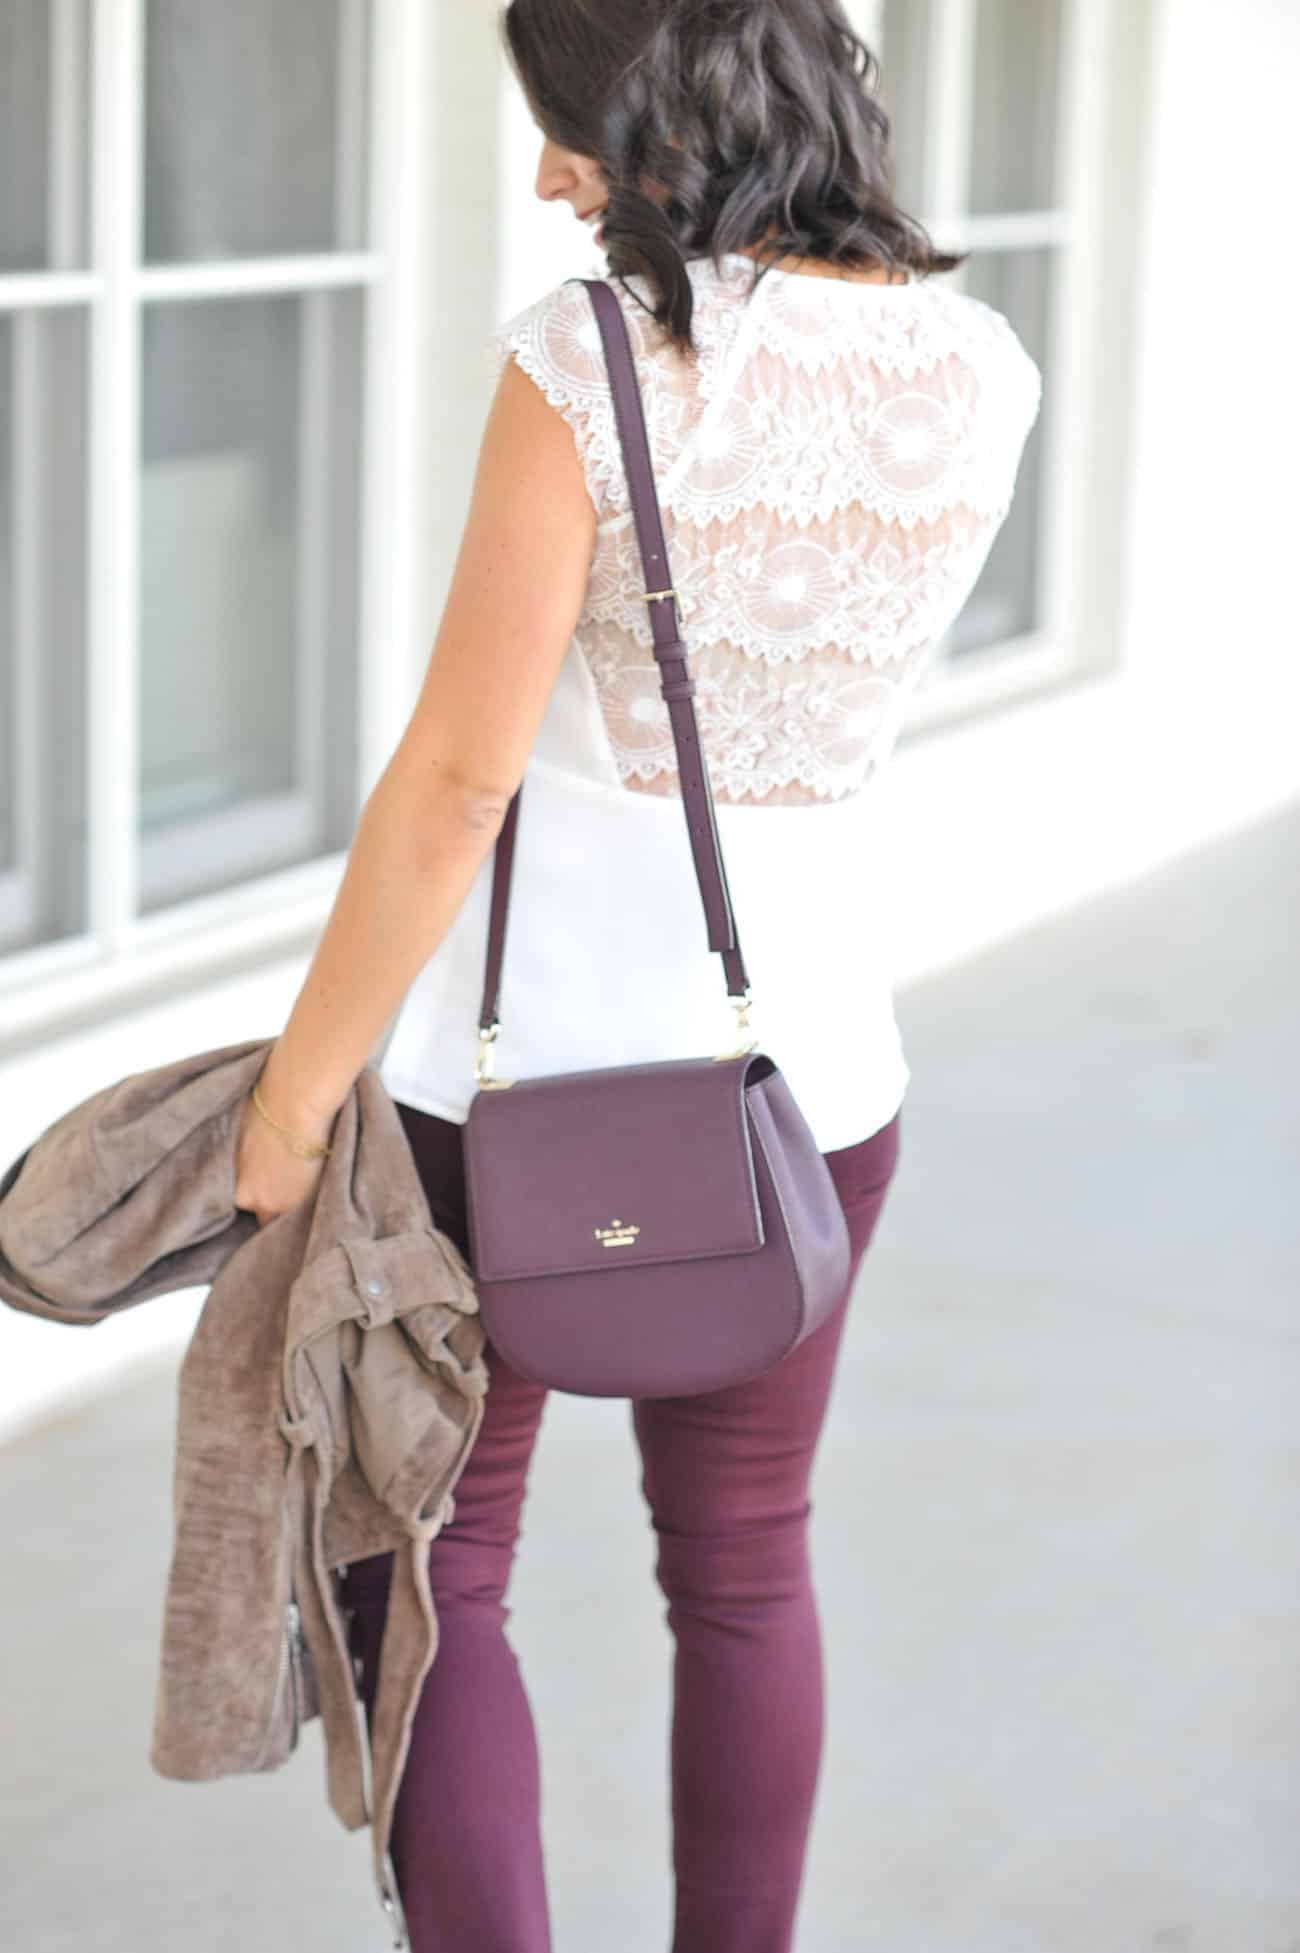 Lace tops for fall, lace top, Cooper & Ella lace top, fall outfit ideas - My Style Vita @mystylevita